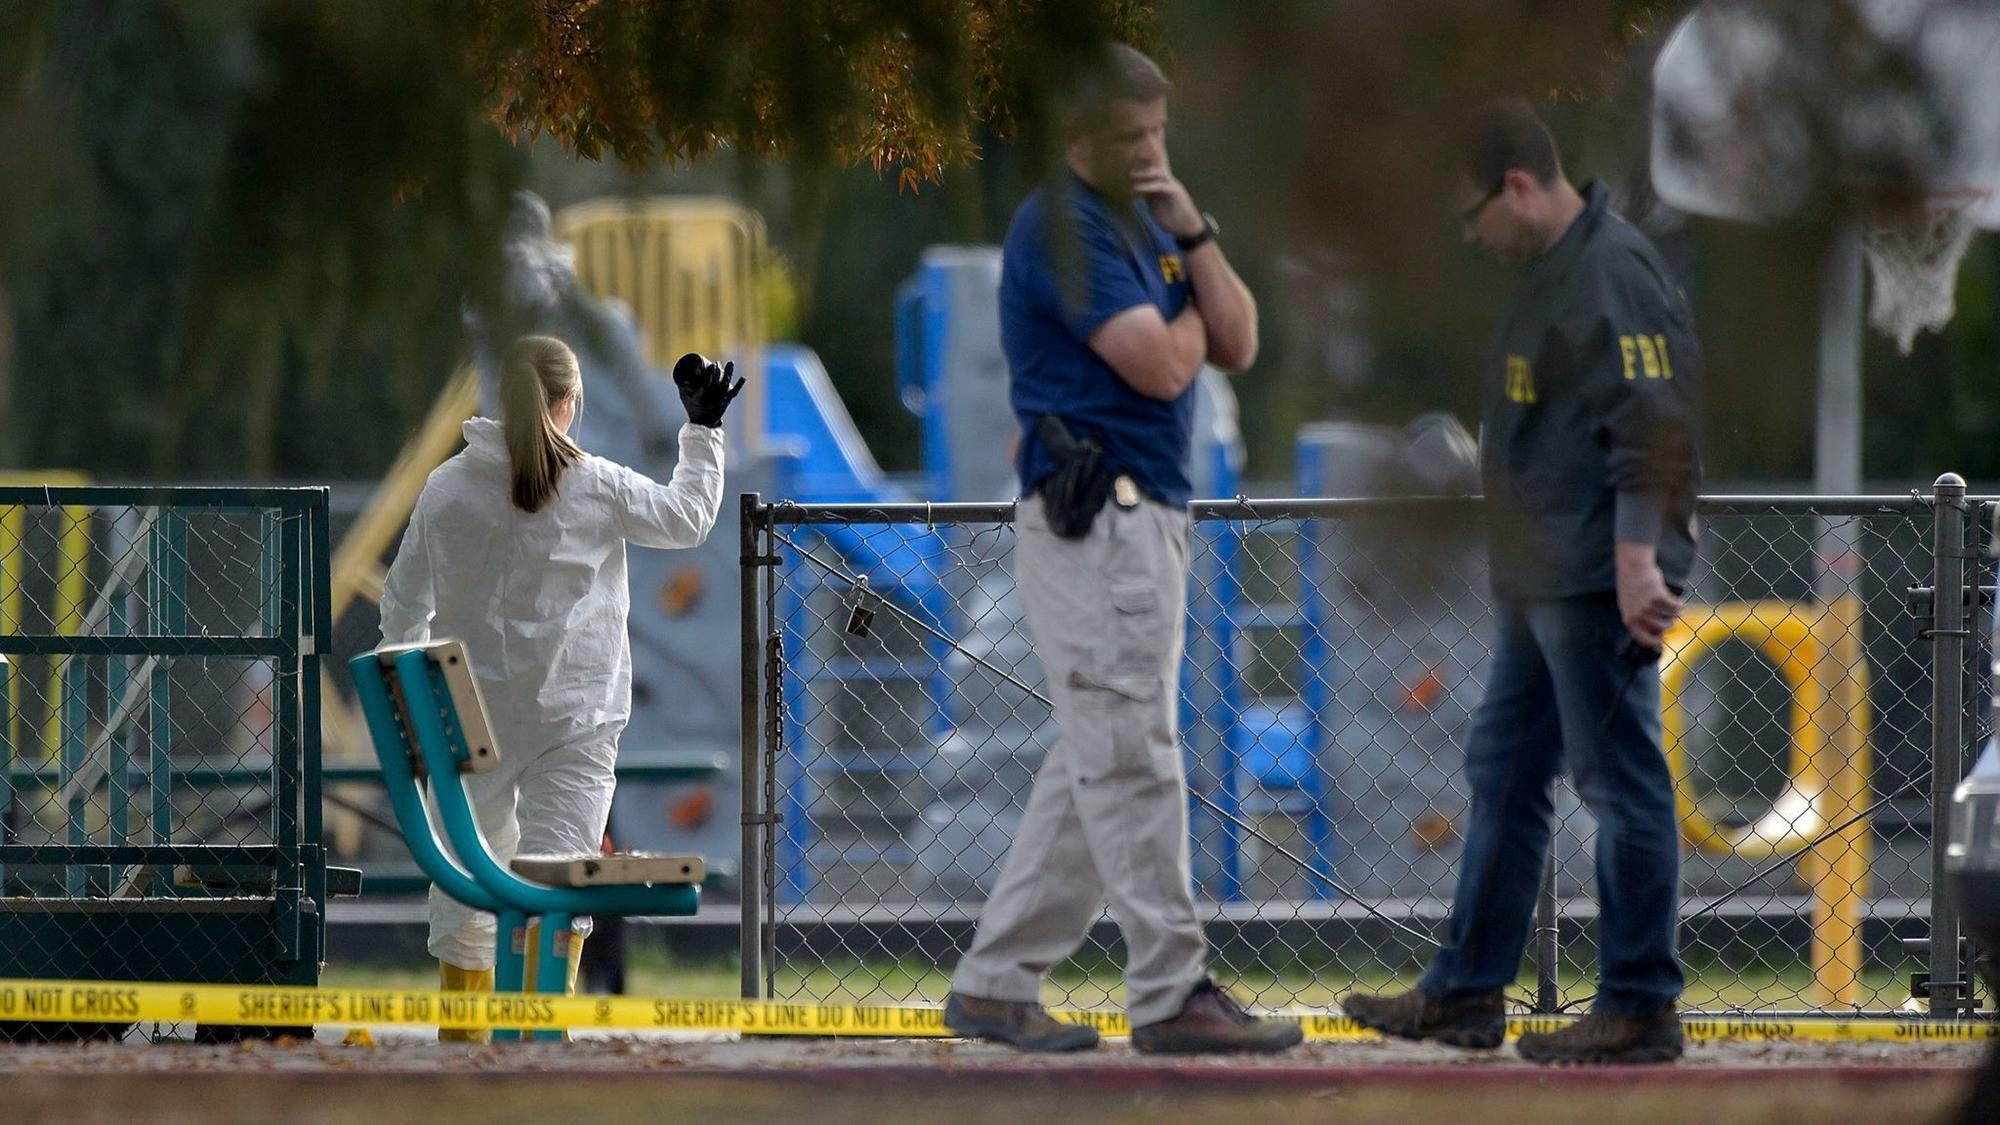 Northern California shooter exploited 'honor system' in telling court he had no guns